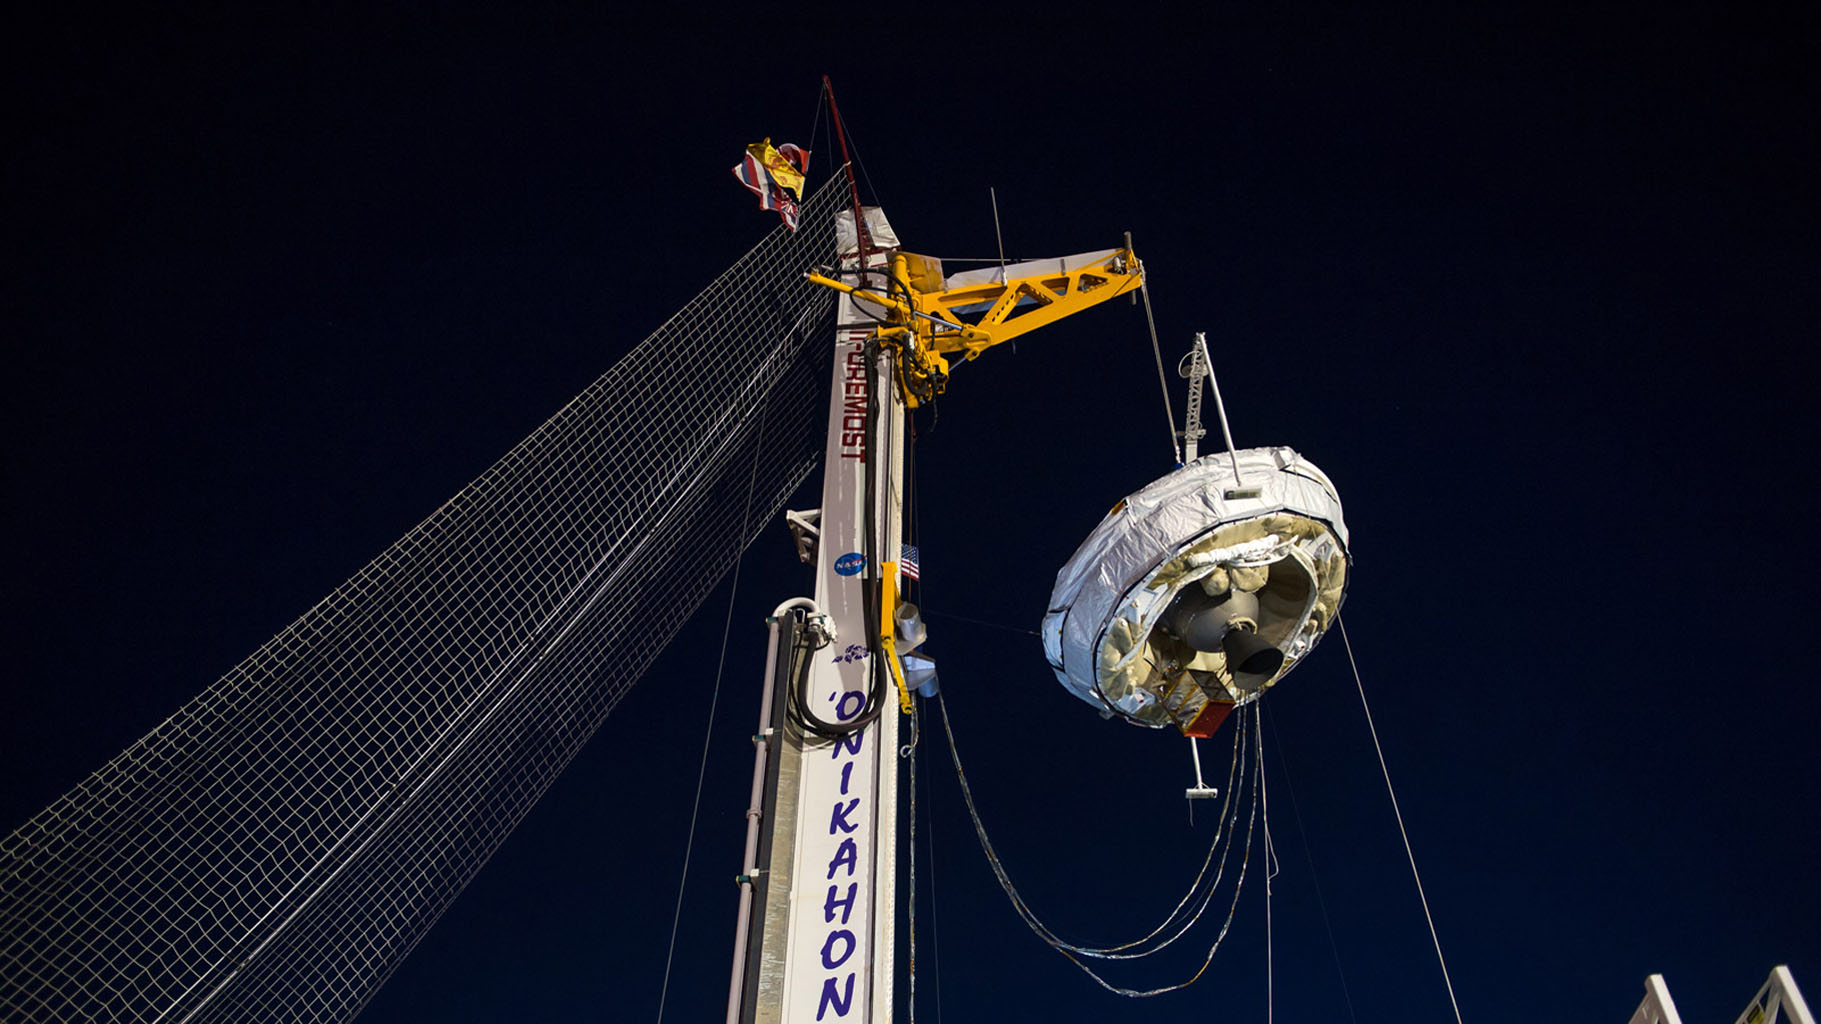 NASA's Low-Density Supersonic Decelerator hangs from a launch tower at U.S. Navy's Pacific Missile Range Facility in Kauai, Hawaii. The saucer-shaped vehicle will test two devices for landing heavy payloads on Mars.